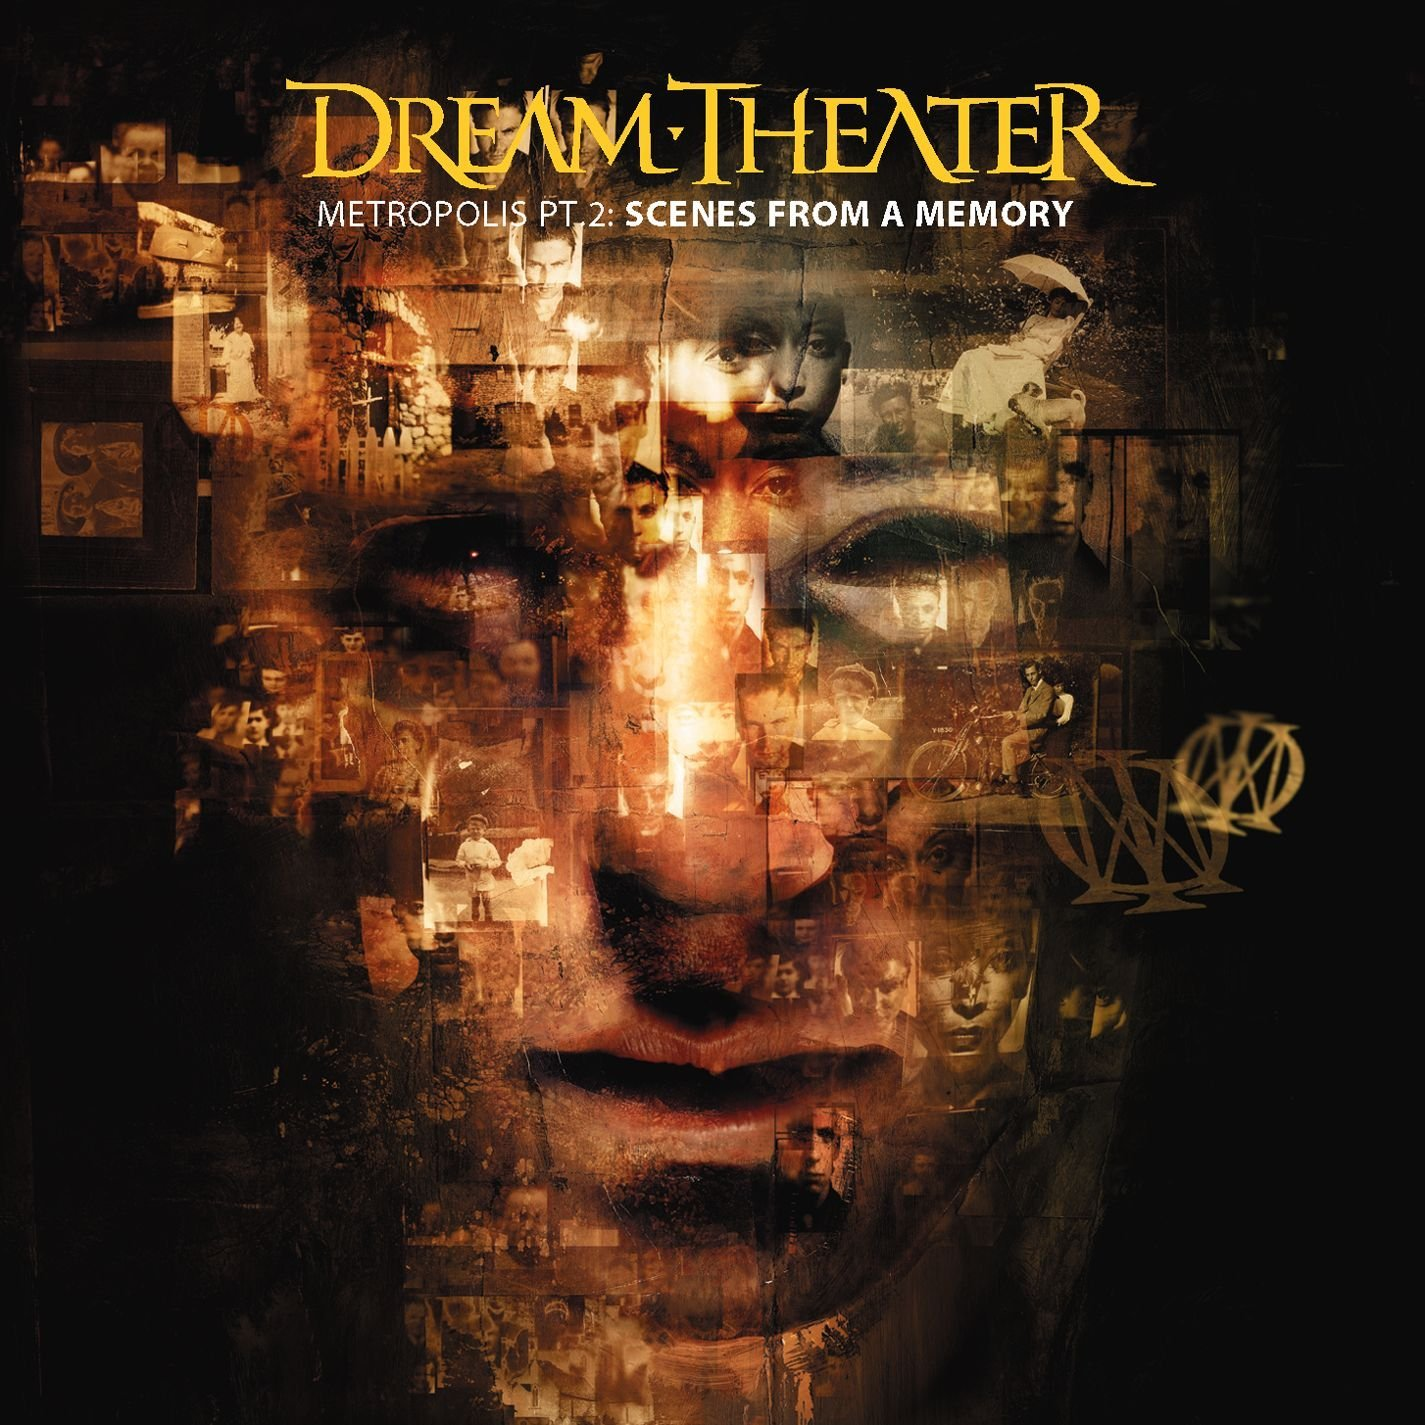 dreamtheater-scenesfromamemory